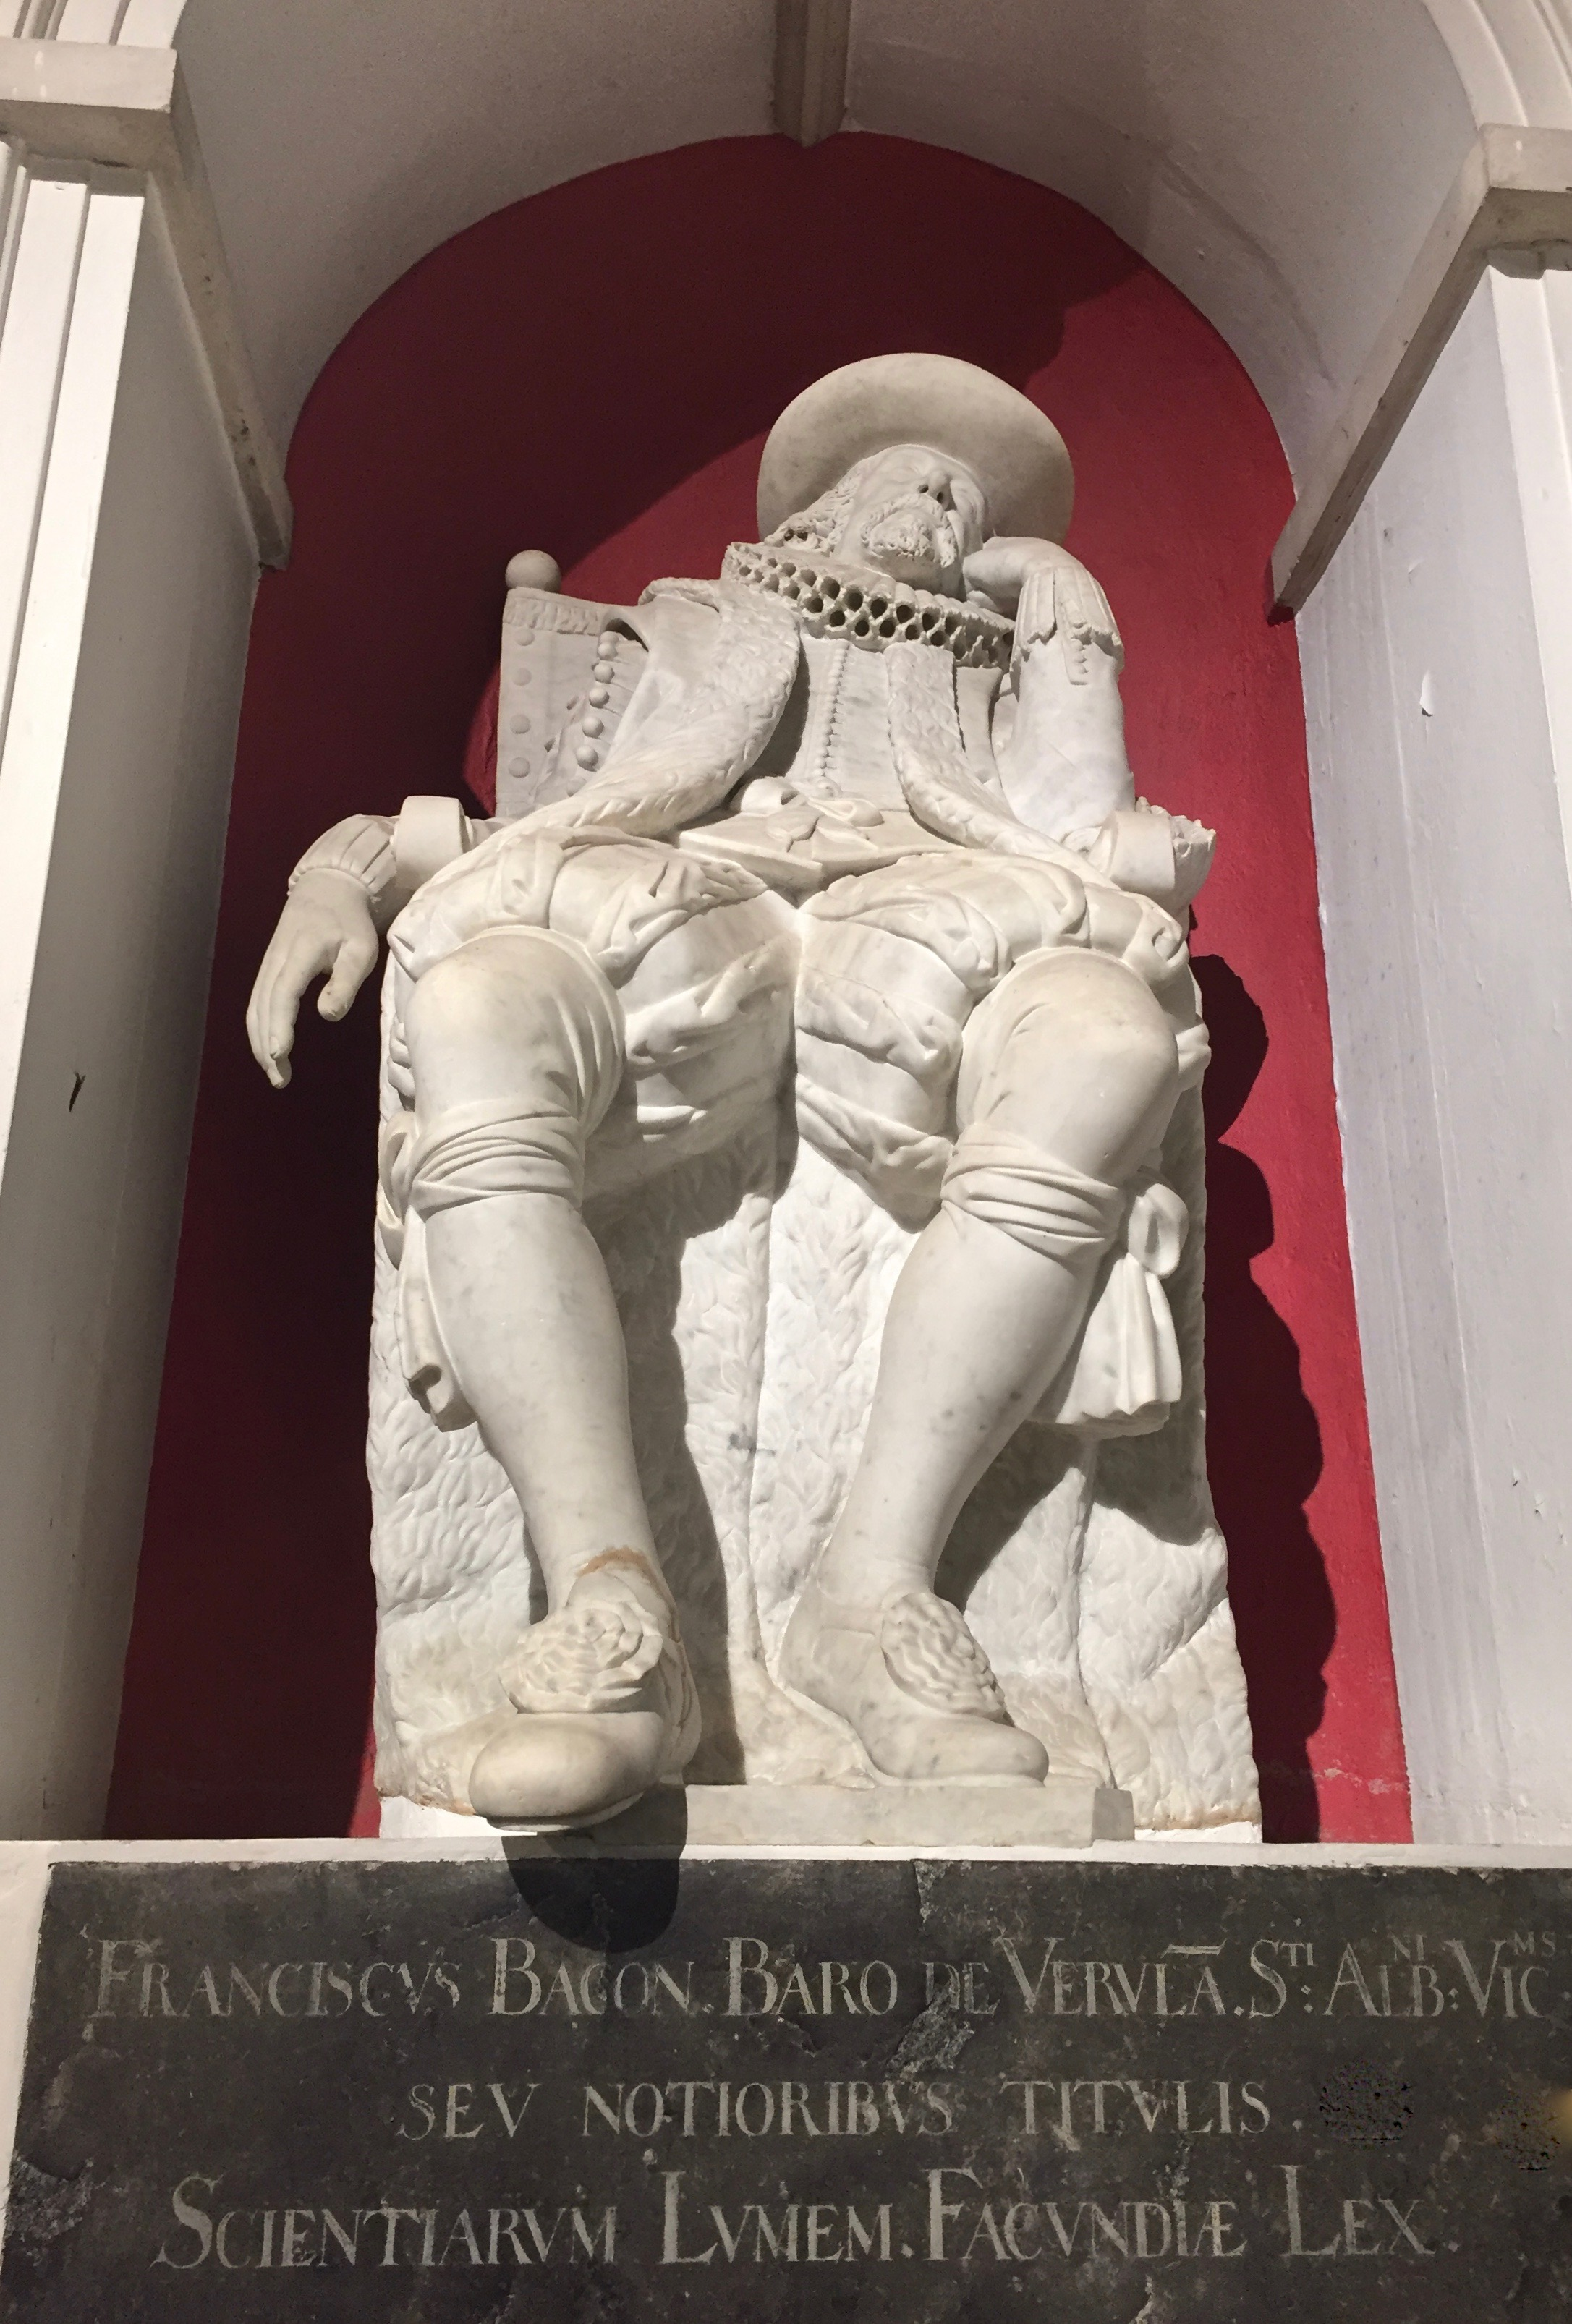 The statue of Sir Francis Bacon in St Michael's Church, St Albans. Image by Rachel Hammersley